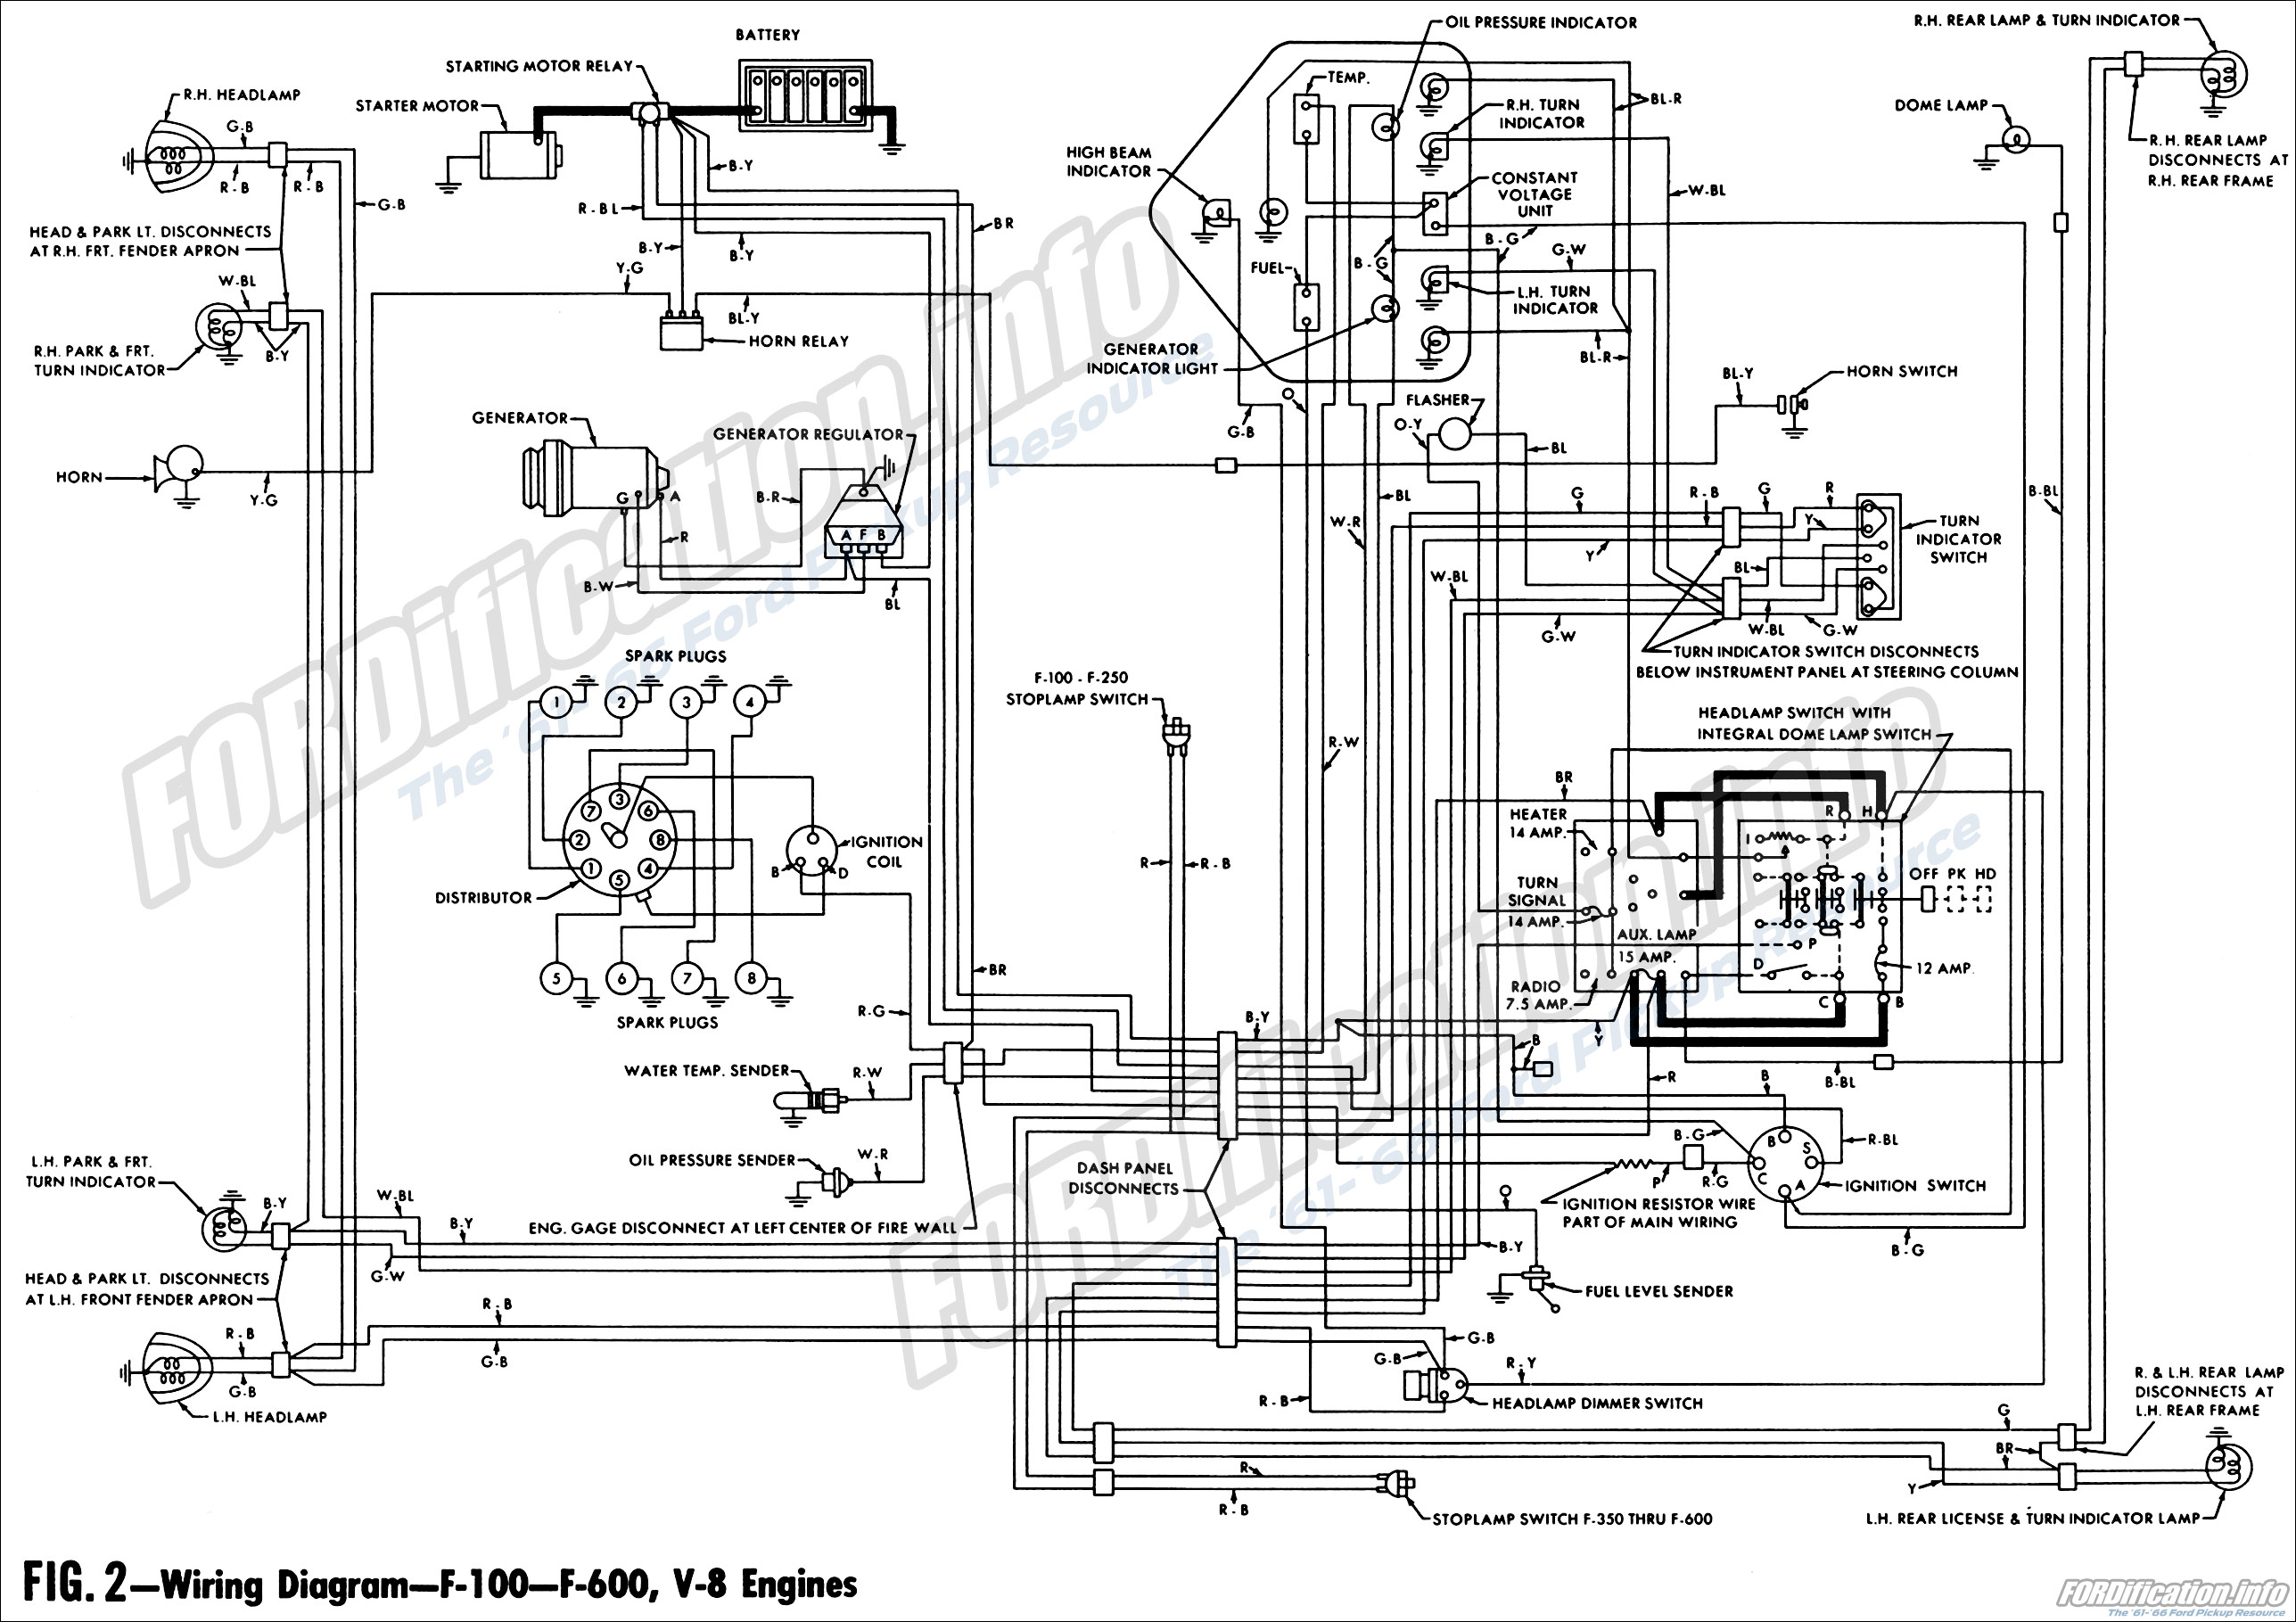 1961 ford truck wiring diagrams fordification info the 61 66 rh fordification info 1961 ford thunderbird wiring diagram 1961 ford ranchero wiring diagram